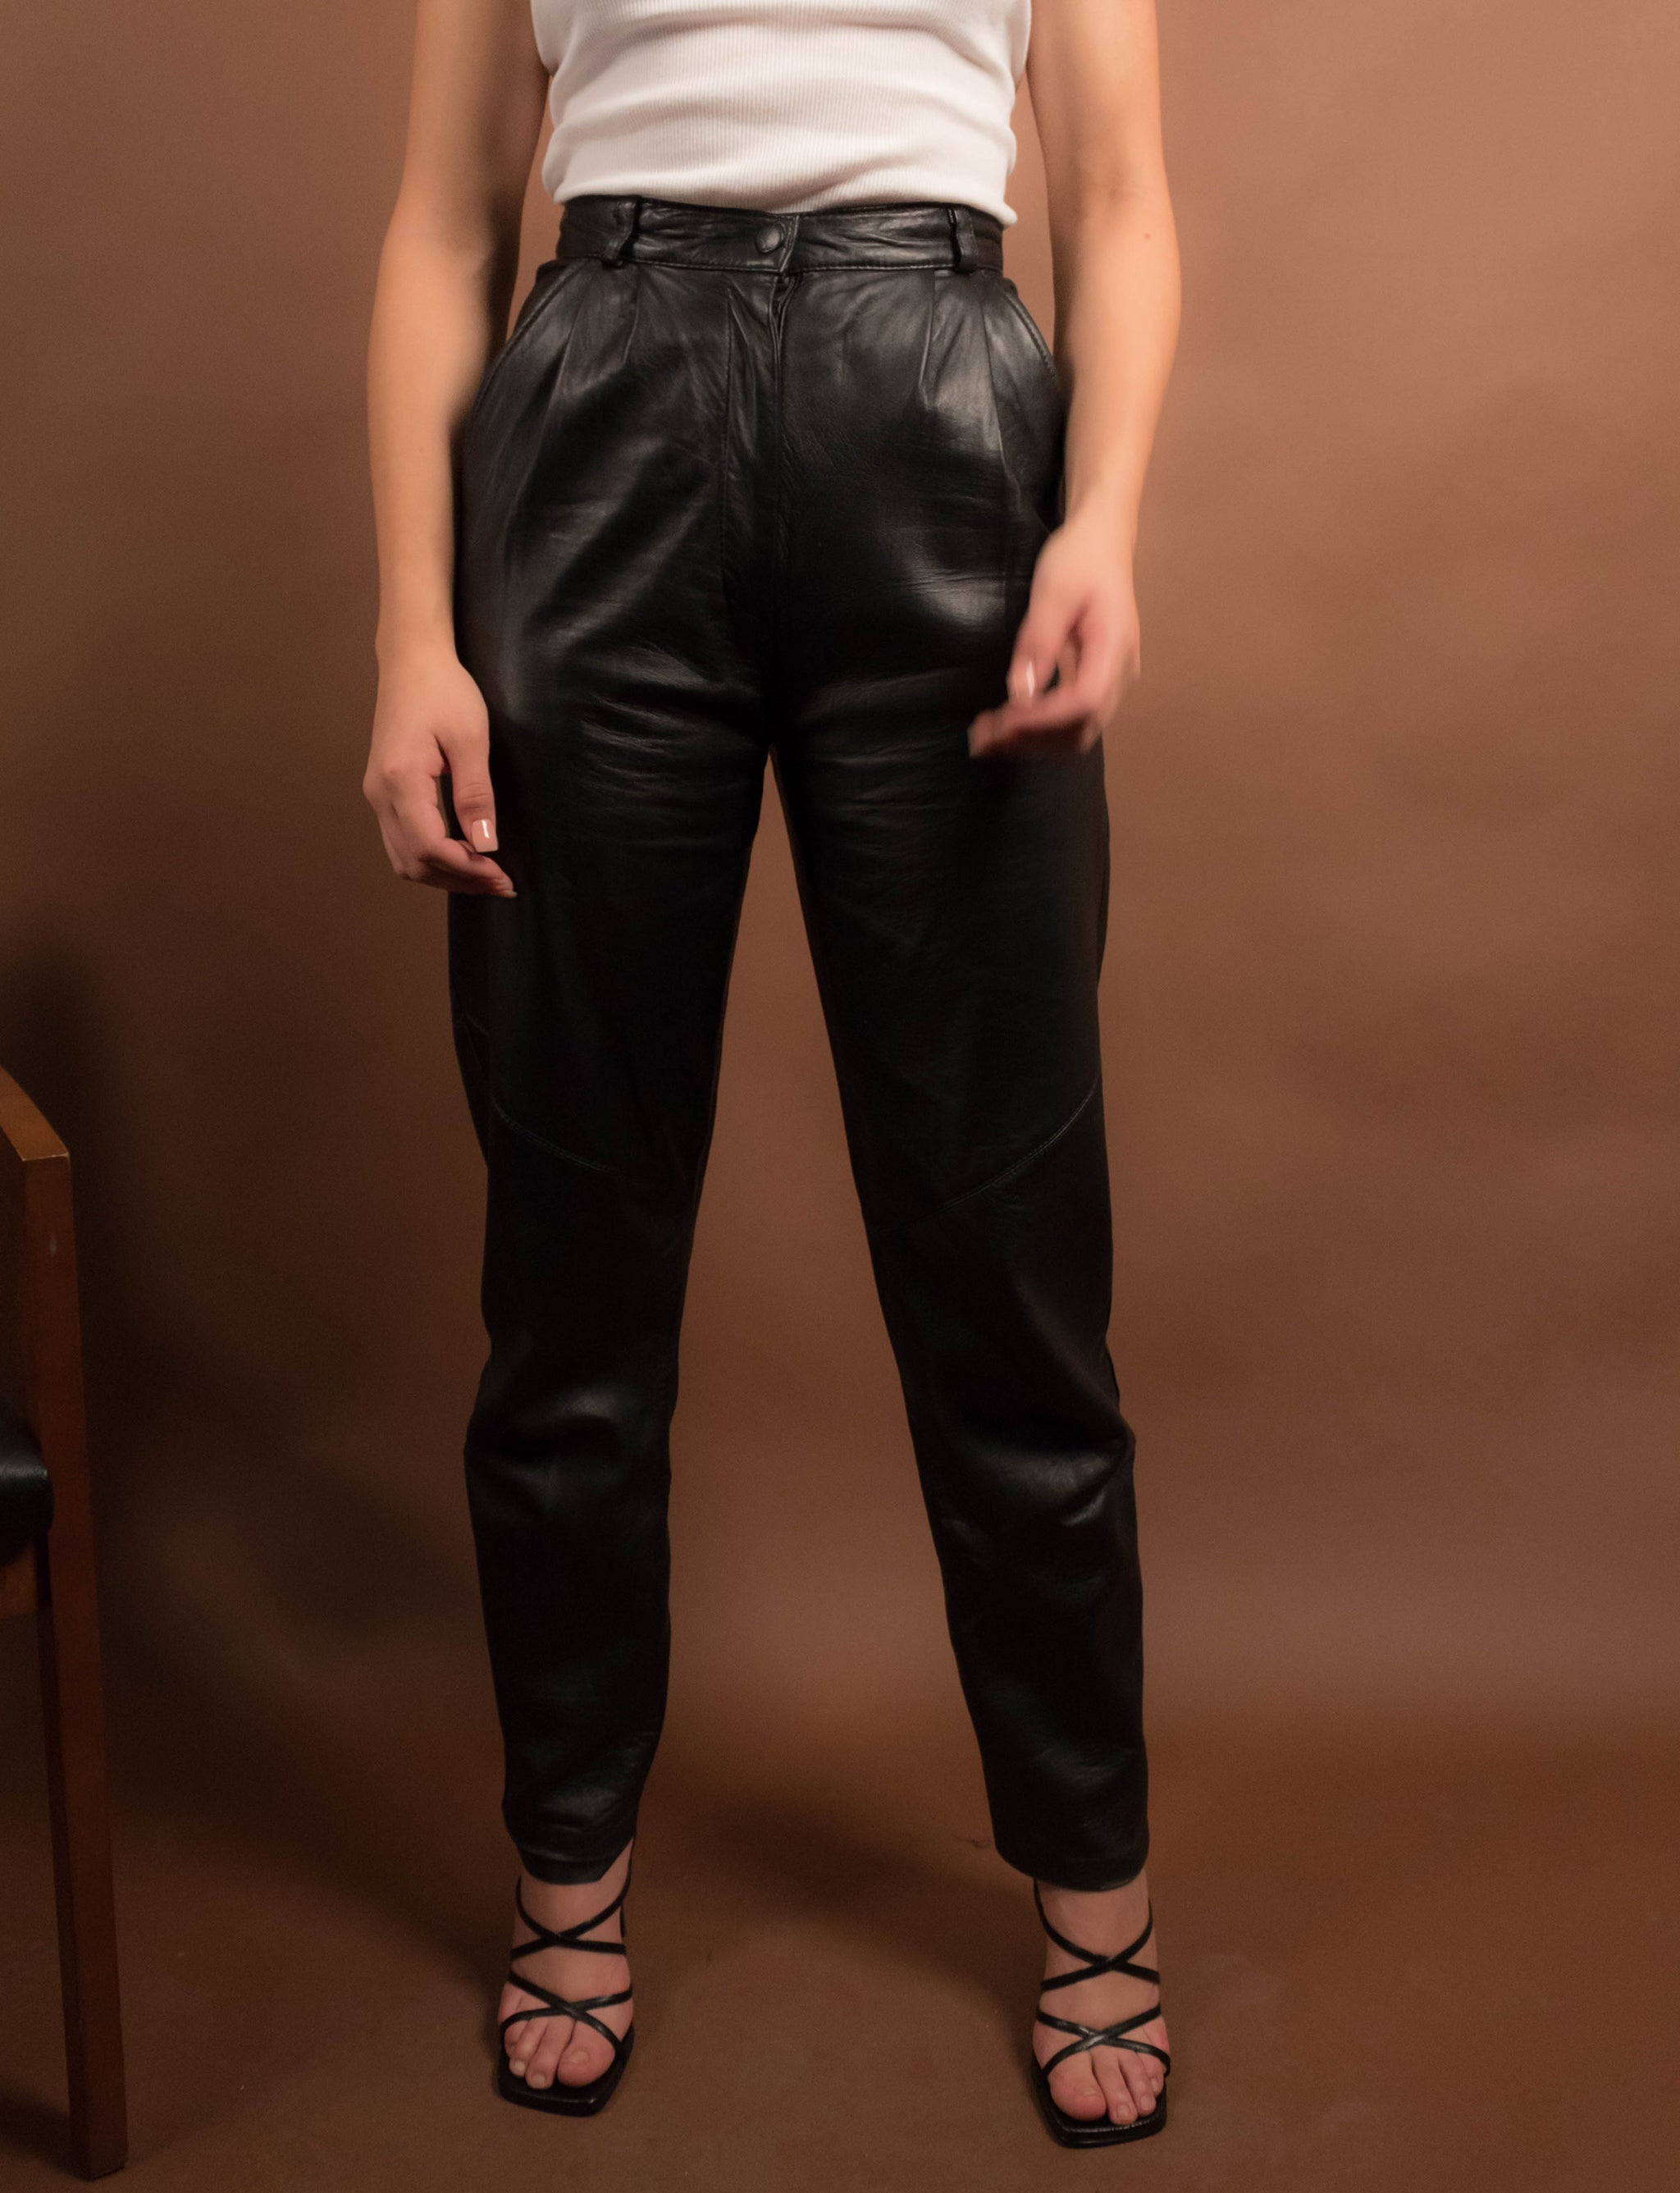 80s Black Leather Pants